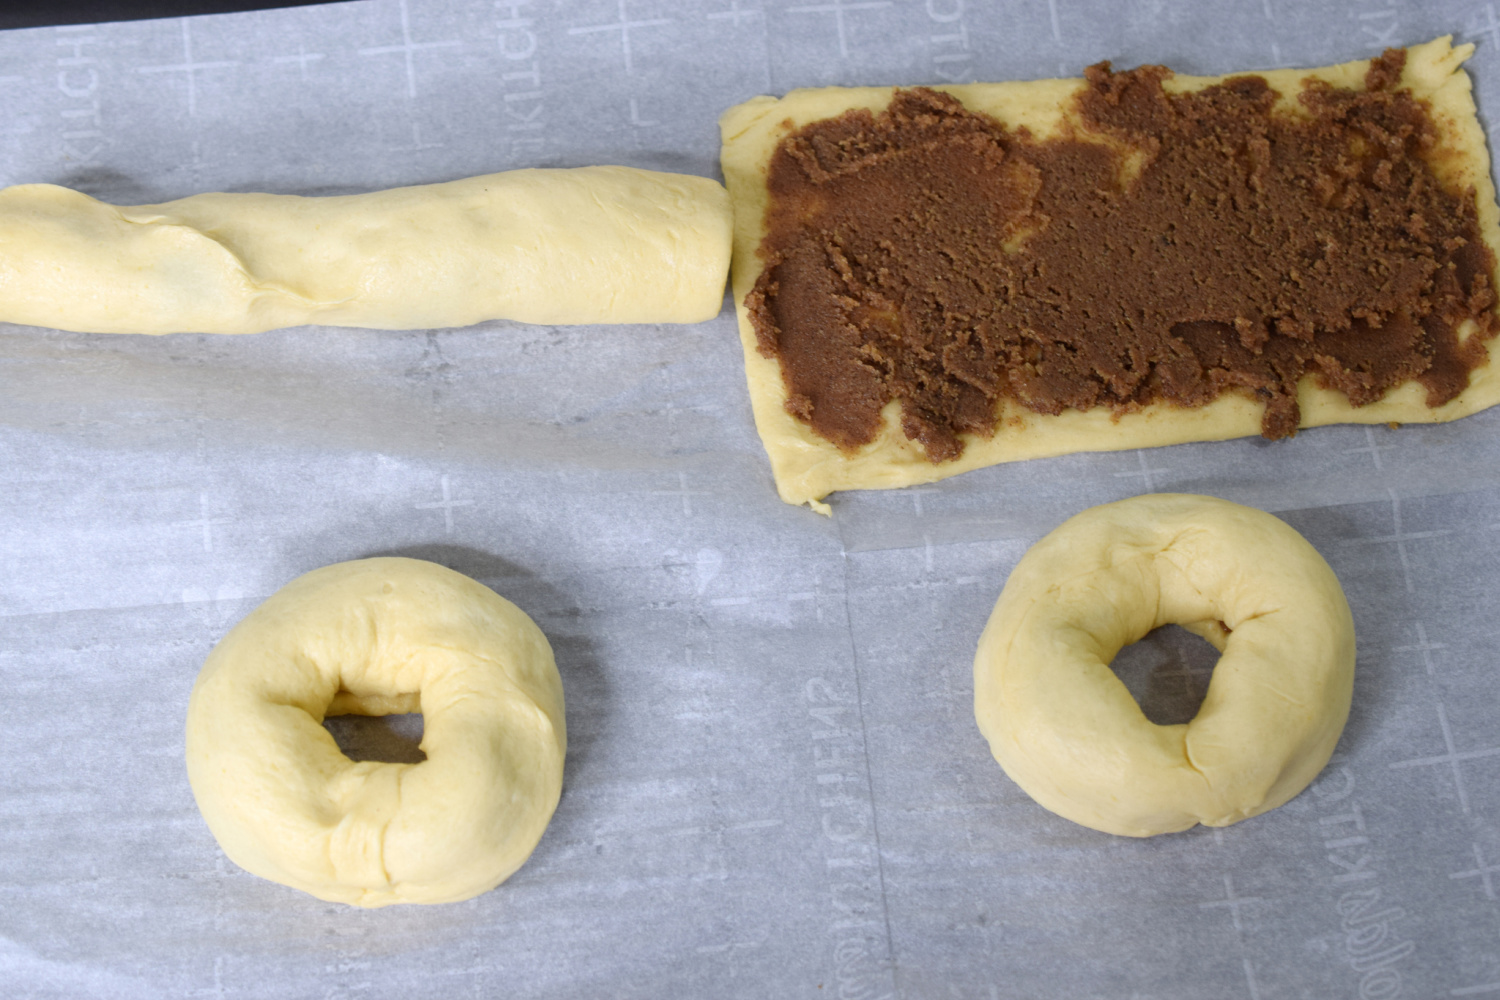 Add filling to crescent rolls and roll them up like doughnuts.